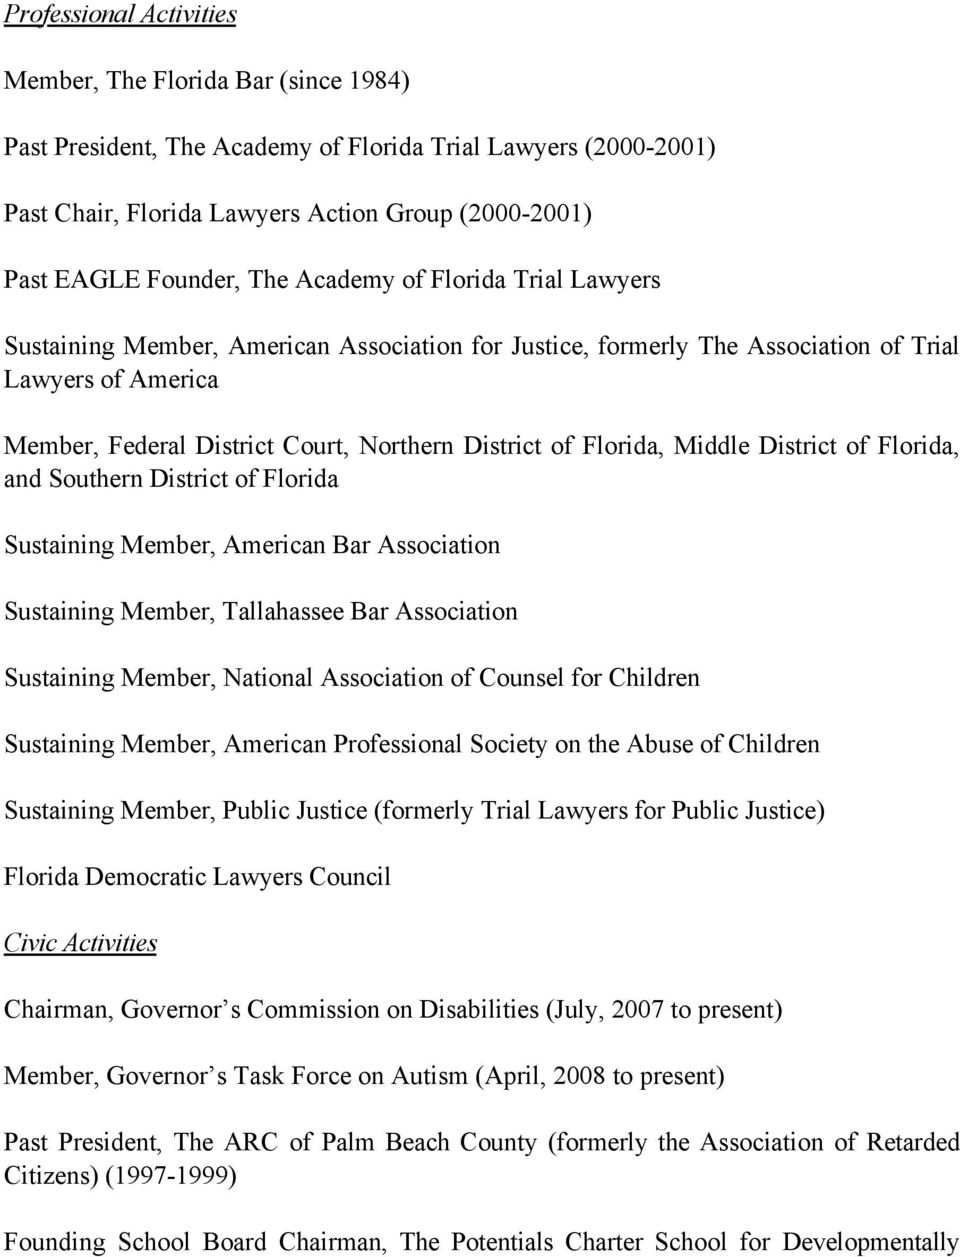 lance j block curriculum vitae pdf florida middle district of florida and southern district of florida sustaining member american